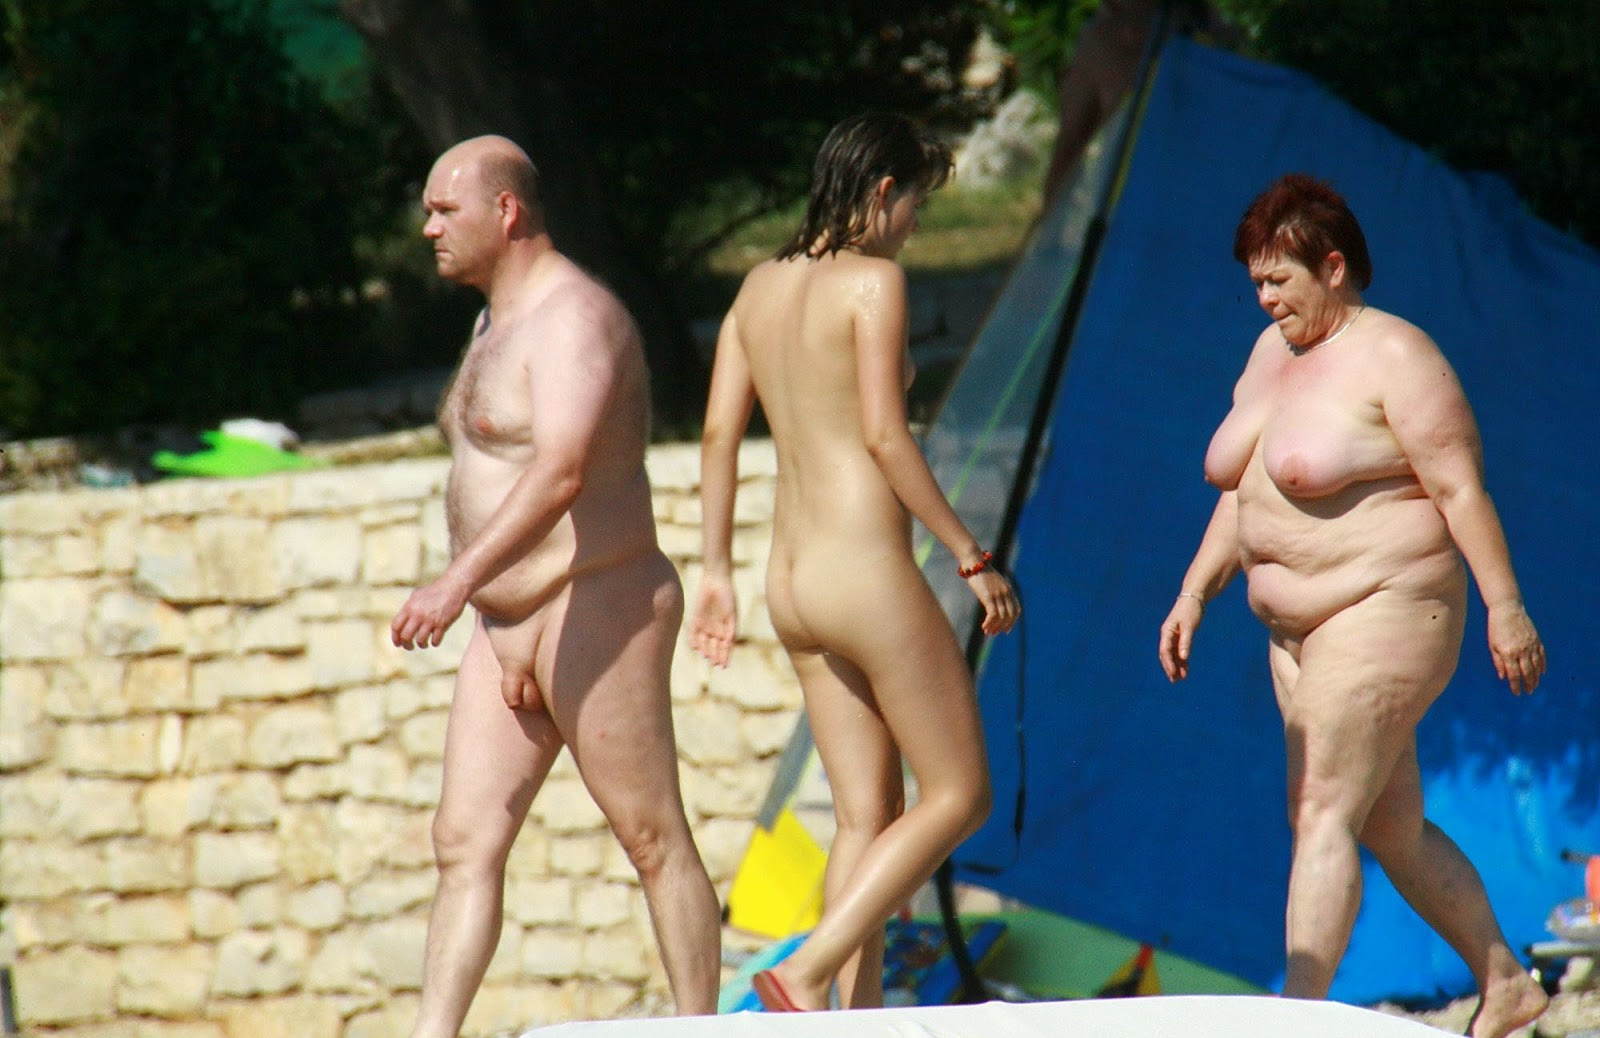 family nudist camp movies free